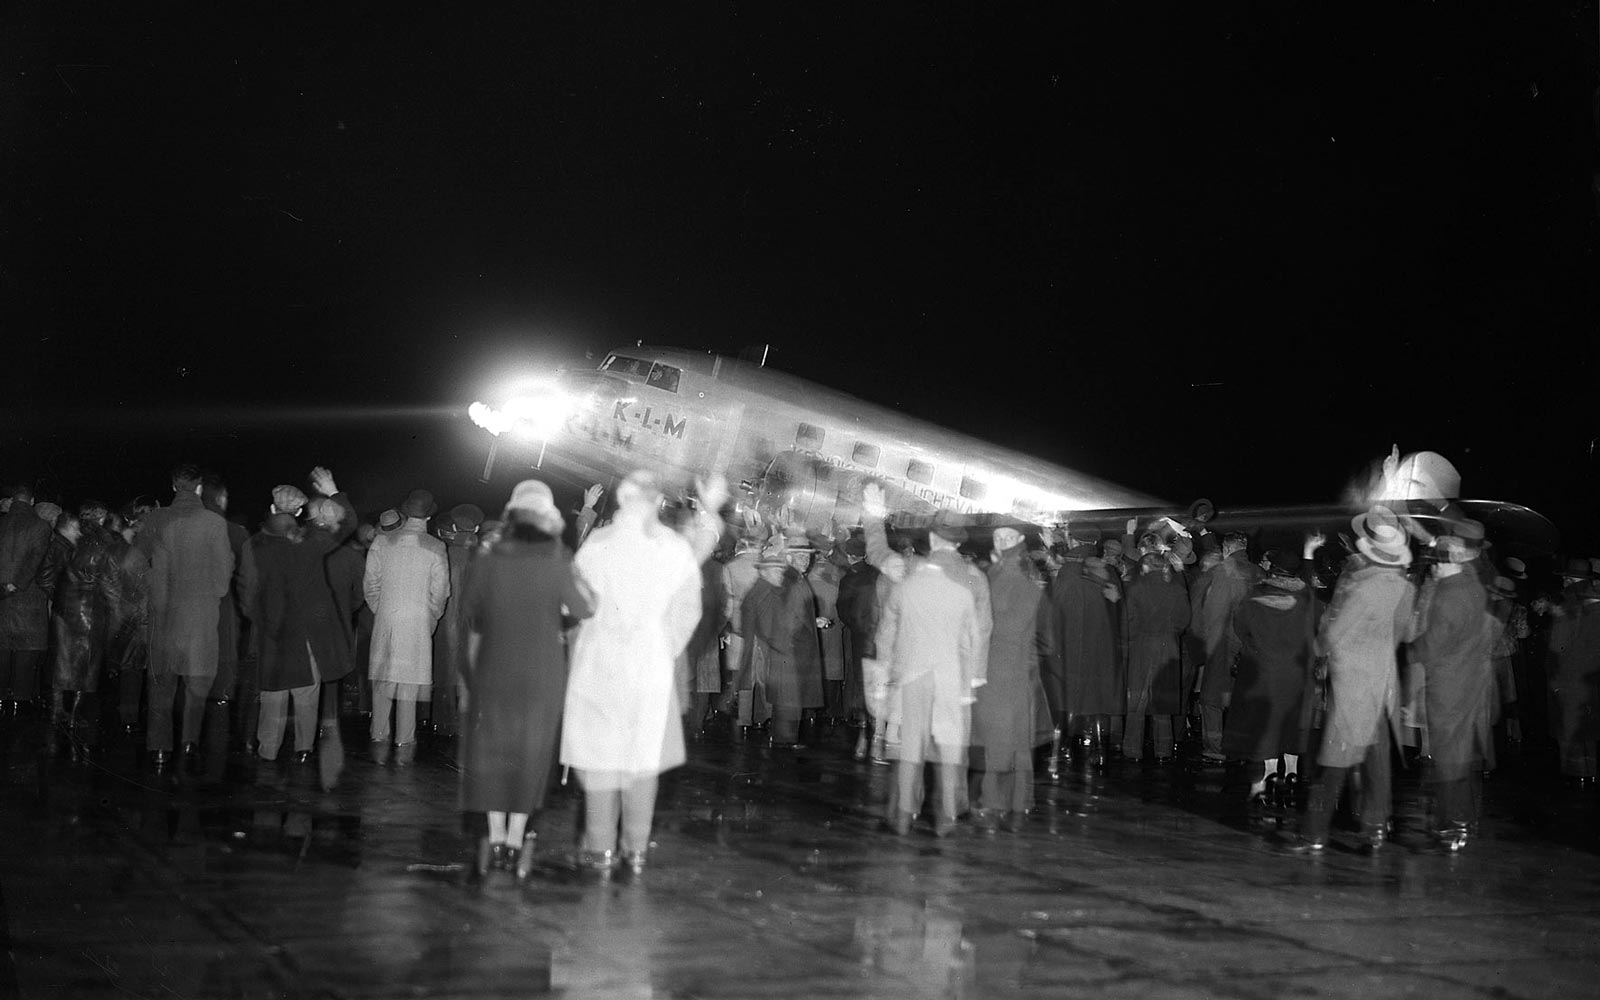 Vintage shot of passengers boarding a KLM flight